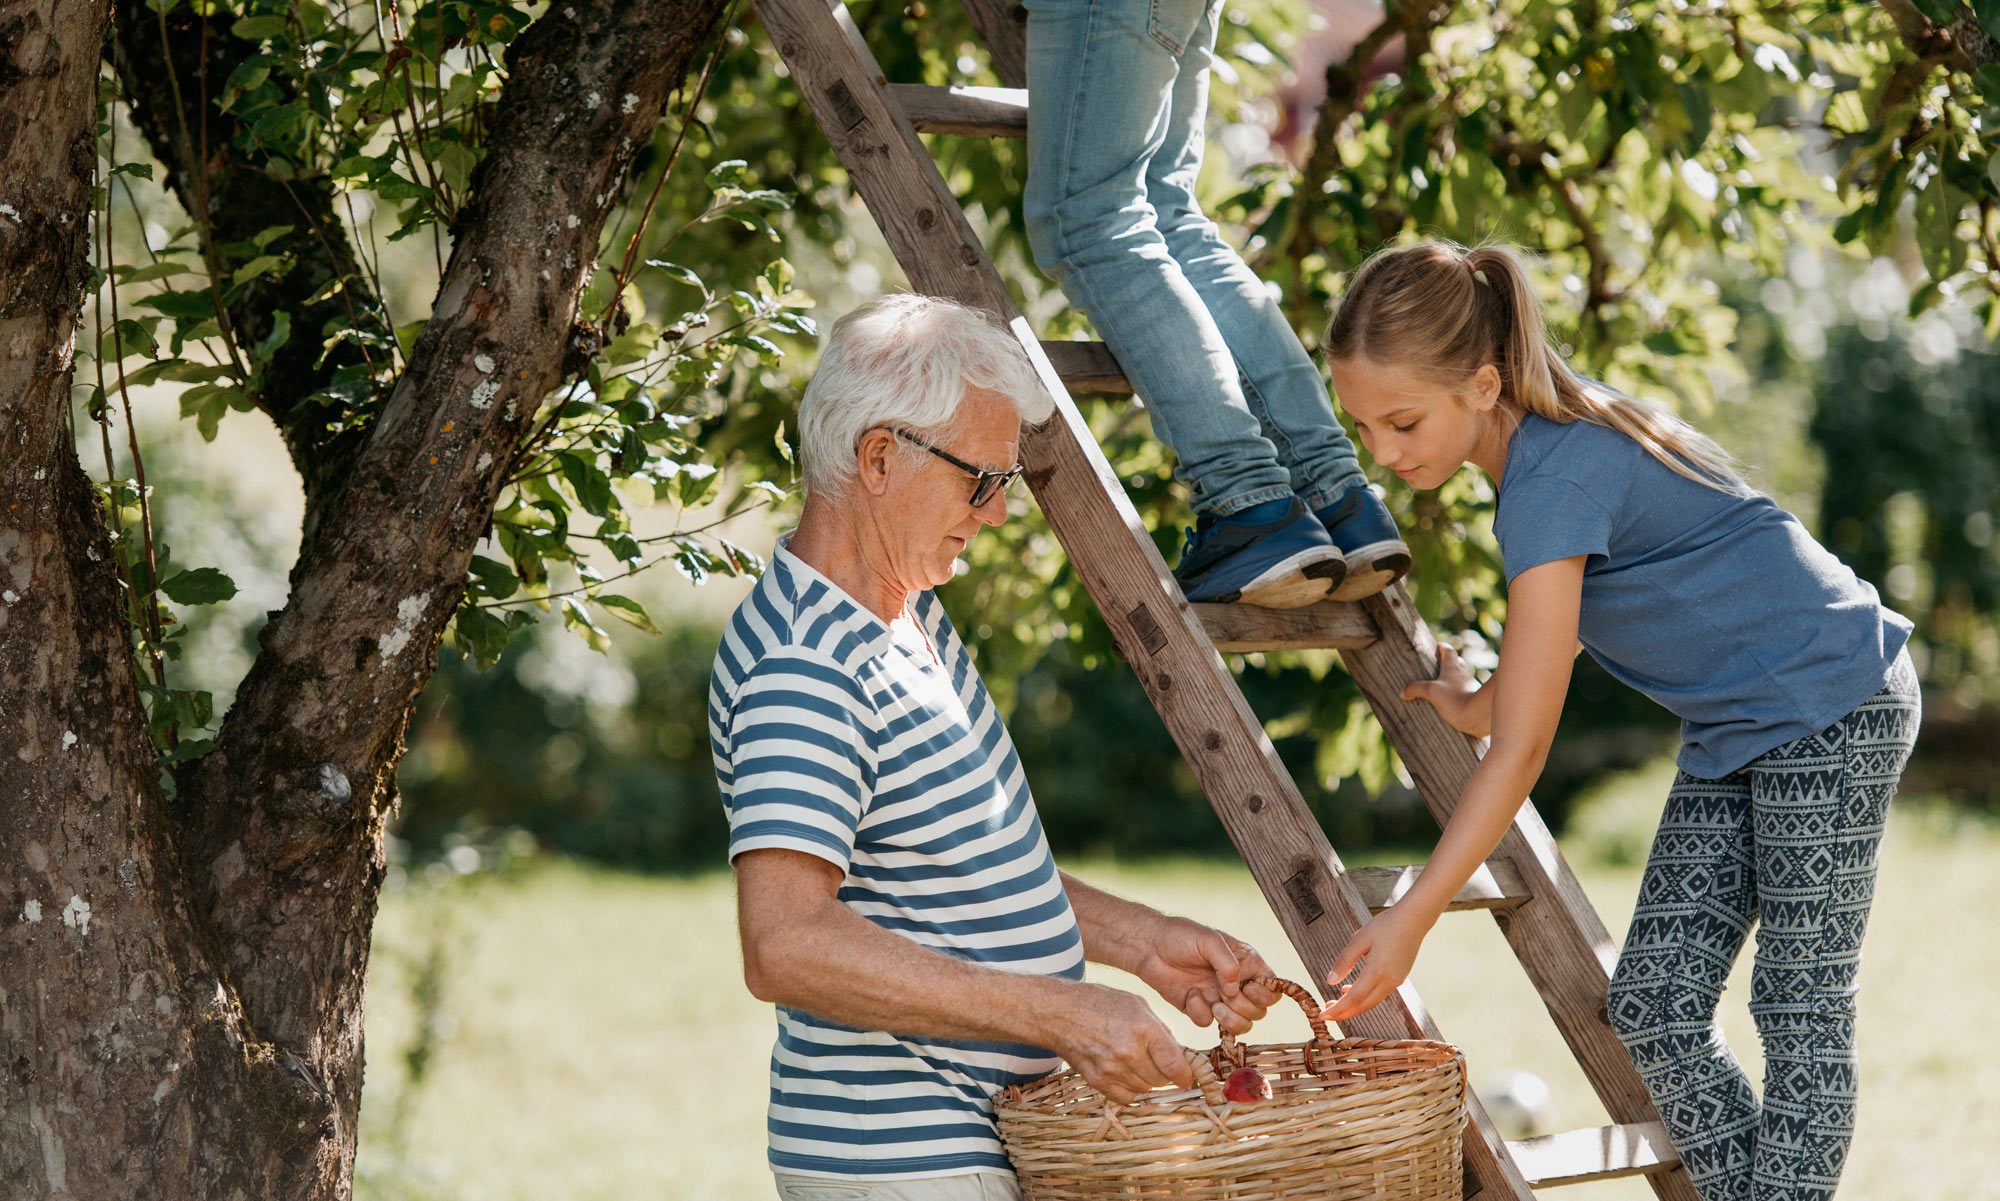 Older man and children on ladder picking apples.